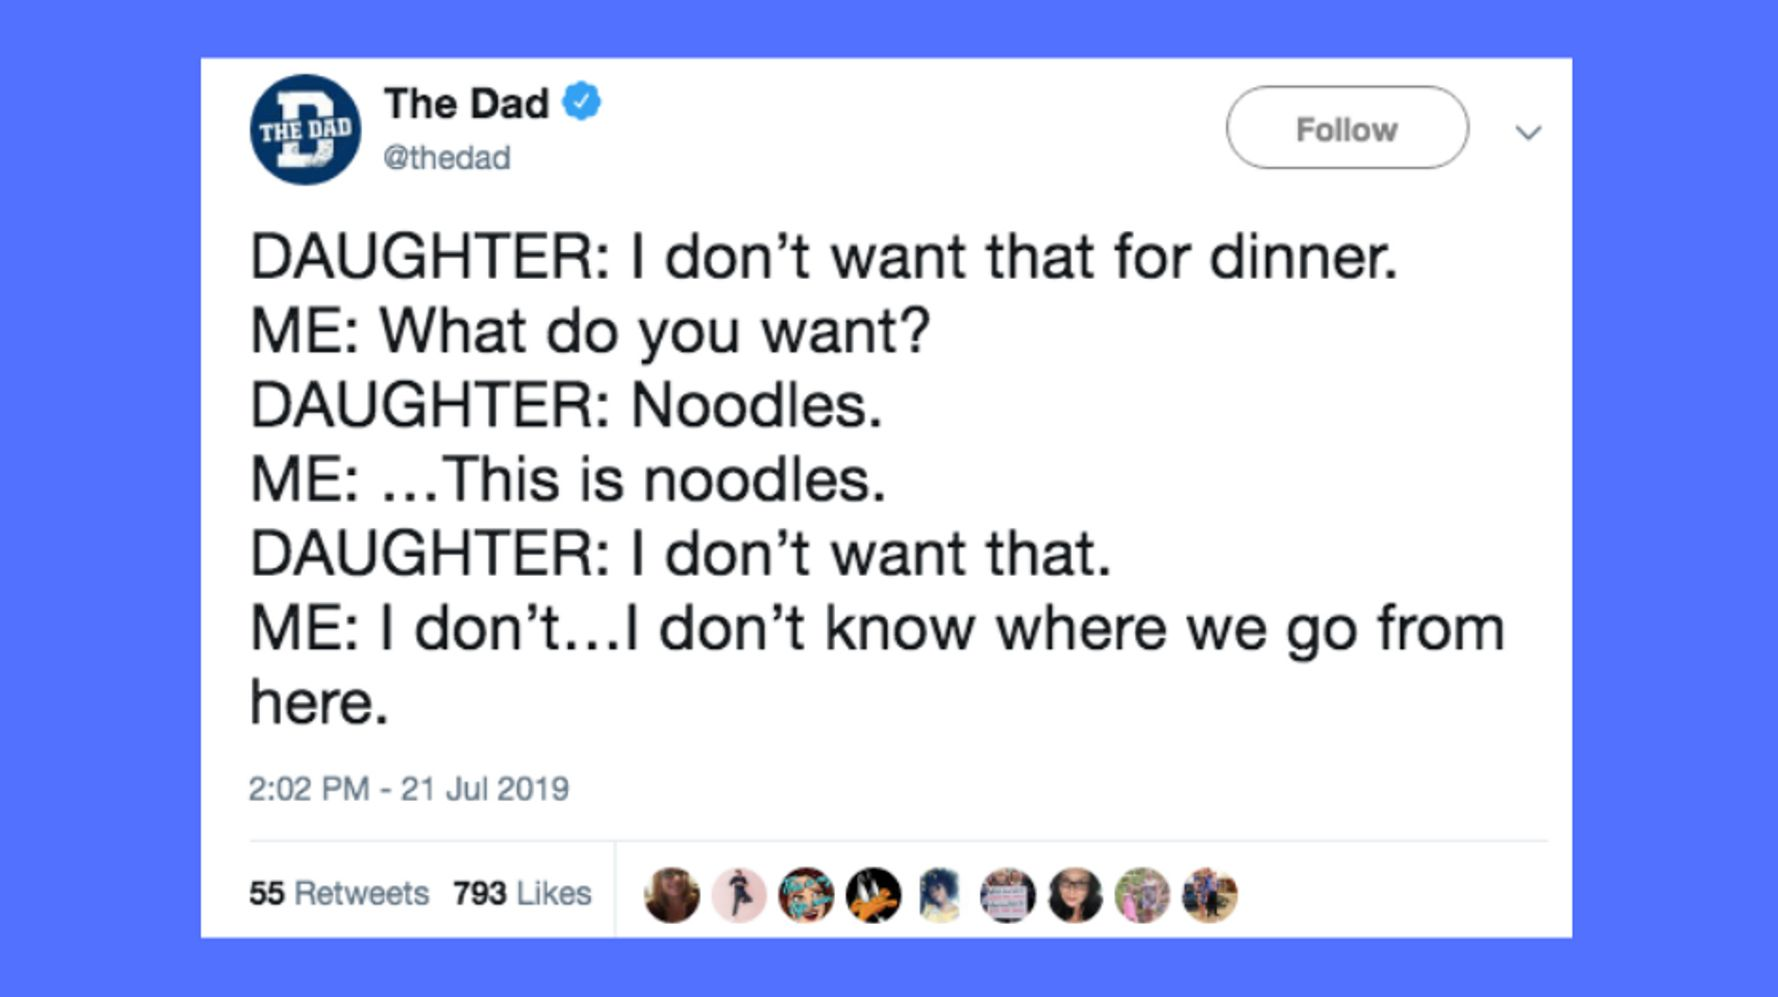 The Funniest Tweets From Parents This Week (July 20-26)